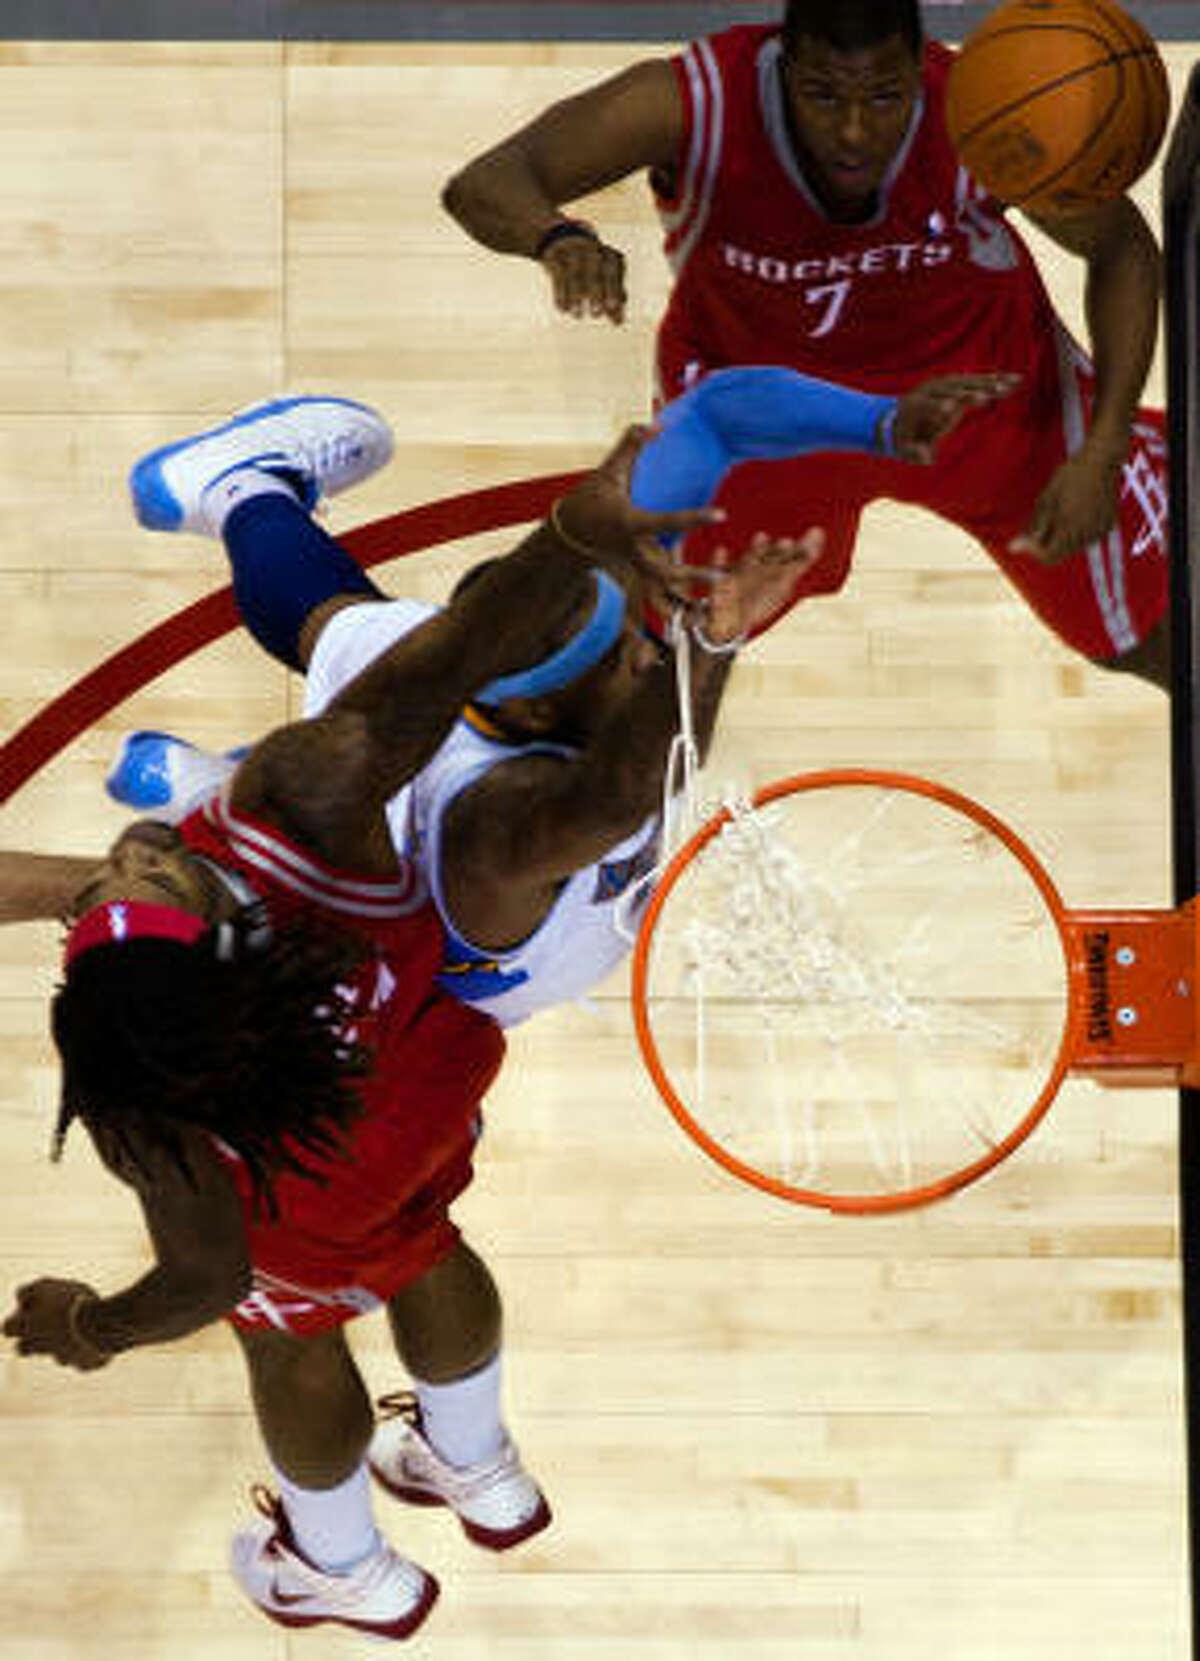 Rockets forward Jordan Hill gets tangled in the net as he fouls Nuggets small forward Carmelo Anthony as Rockets point guard Kyle Lowry (7) looks on during the fourth quarter.